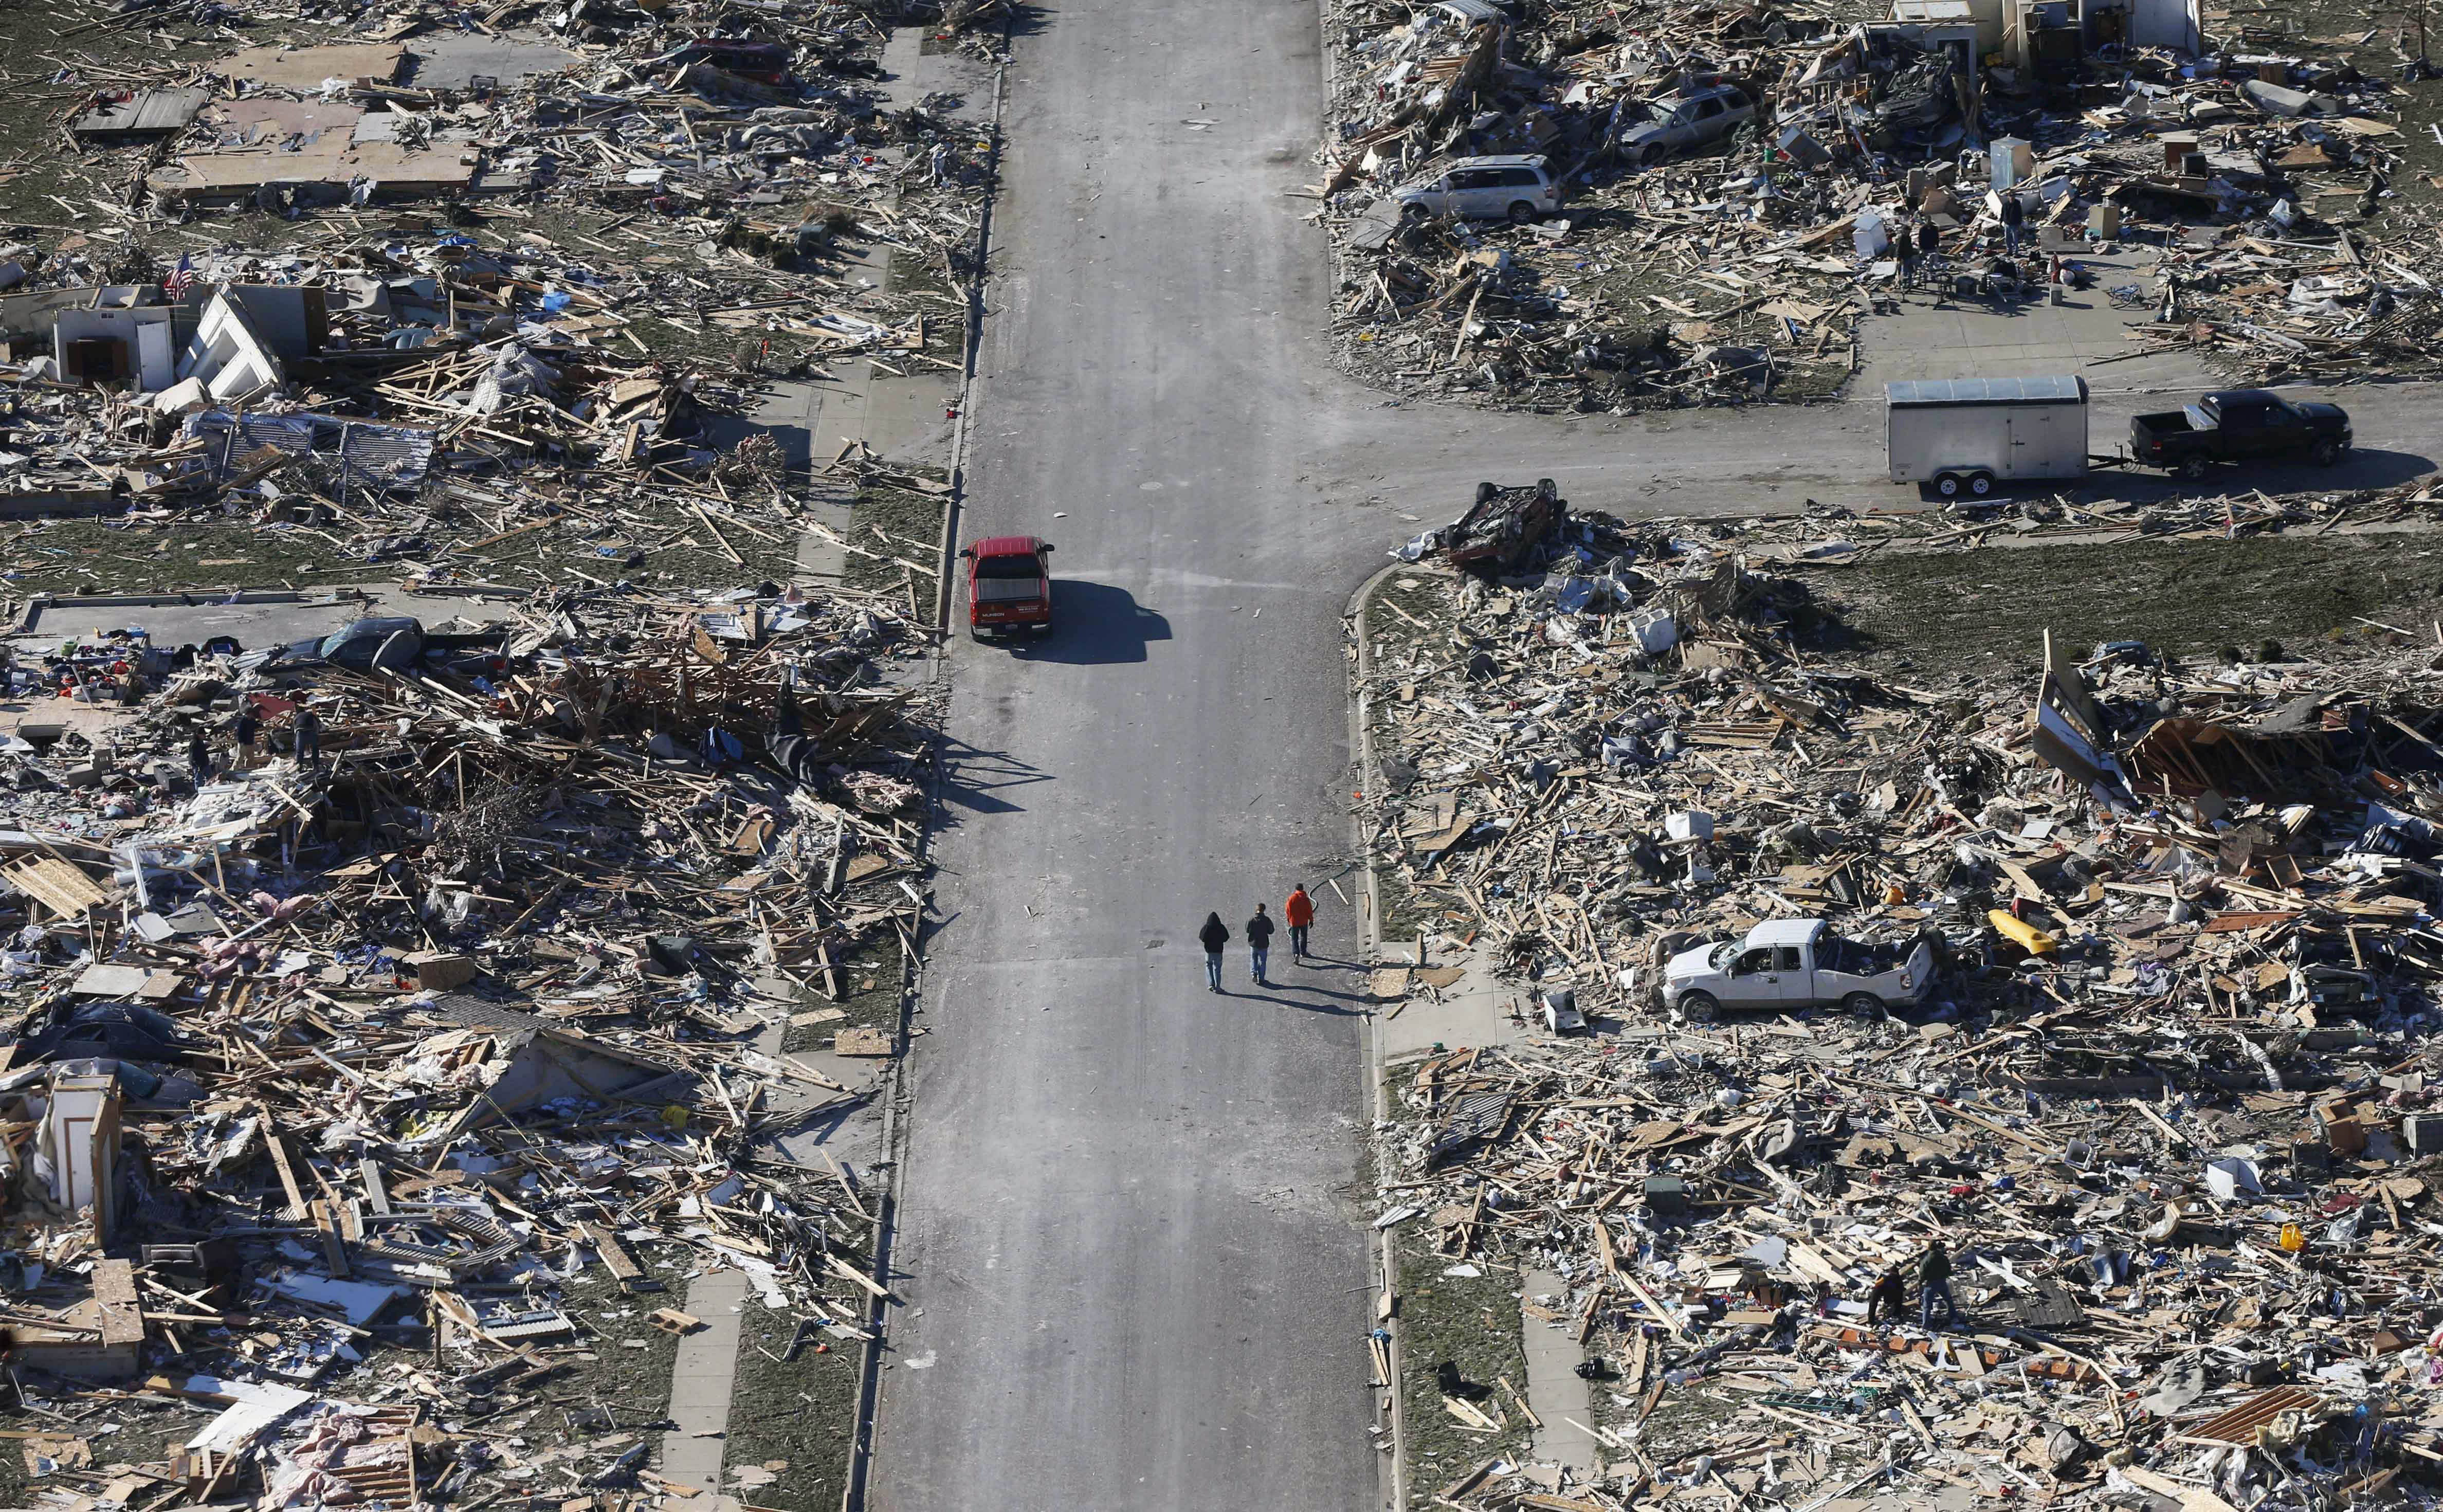 This Monday, Nov. 18, 2013, aerial file photo shows people walking down a street where homes once stood that were destroyed by a tornado that hit the western Illinois town of Washington. Mayor Gary Manier said the city has issued more than 600 building permits for the more than 1,000 badly damaged or destroyed homes. But construction was slowed by the harsh winter and for many is just beginning.